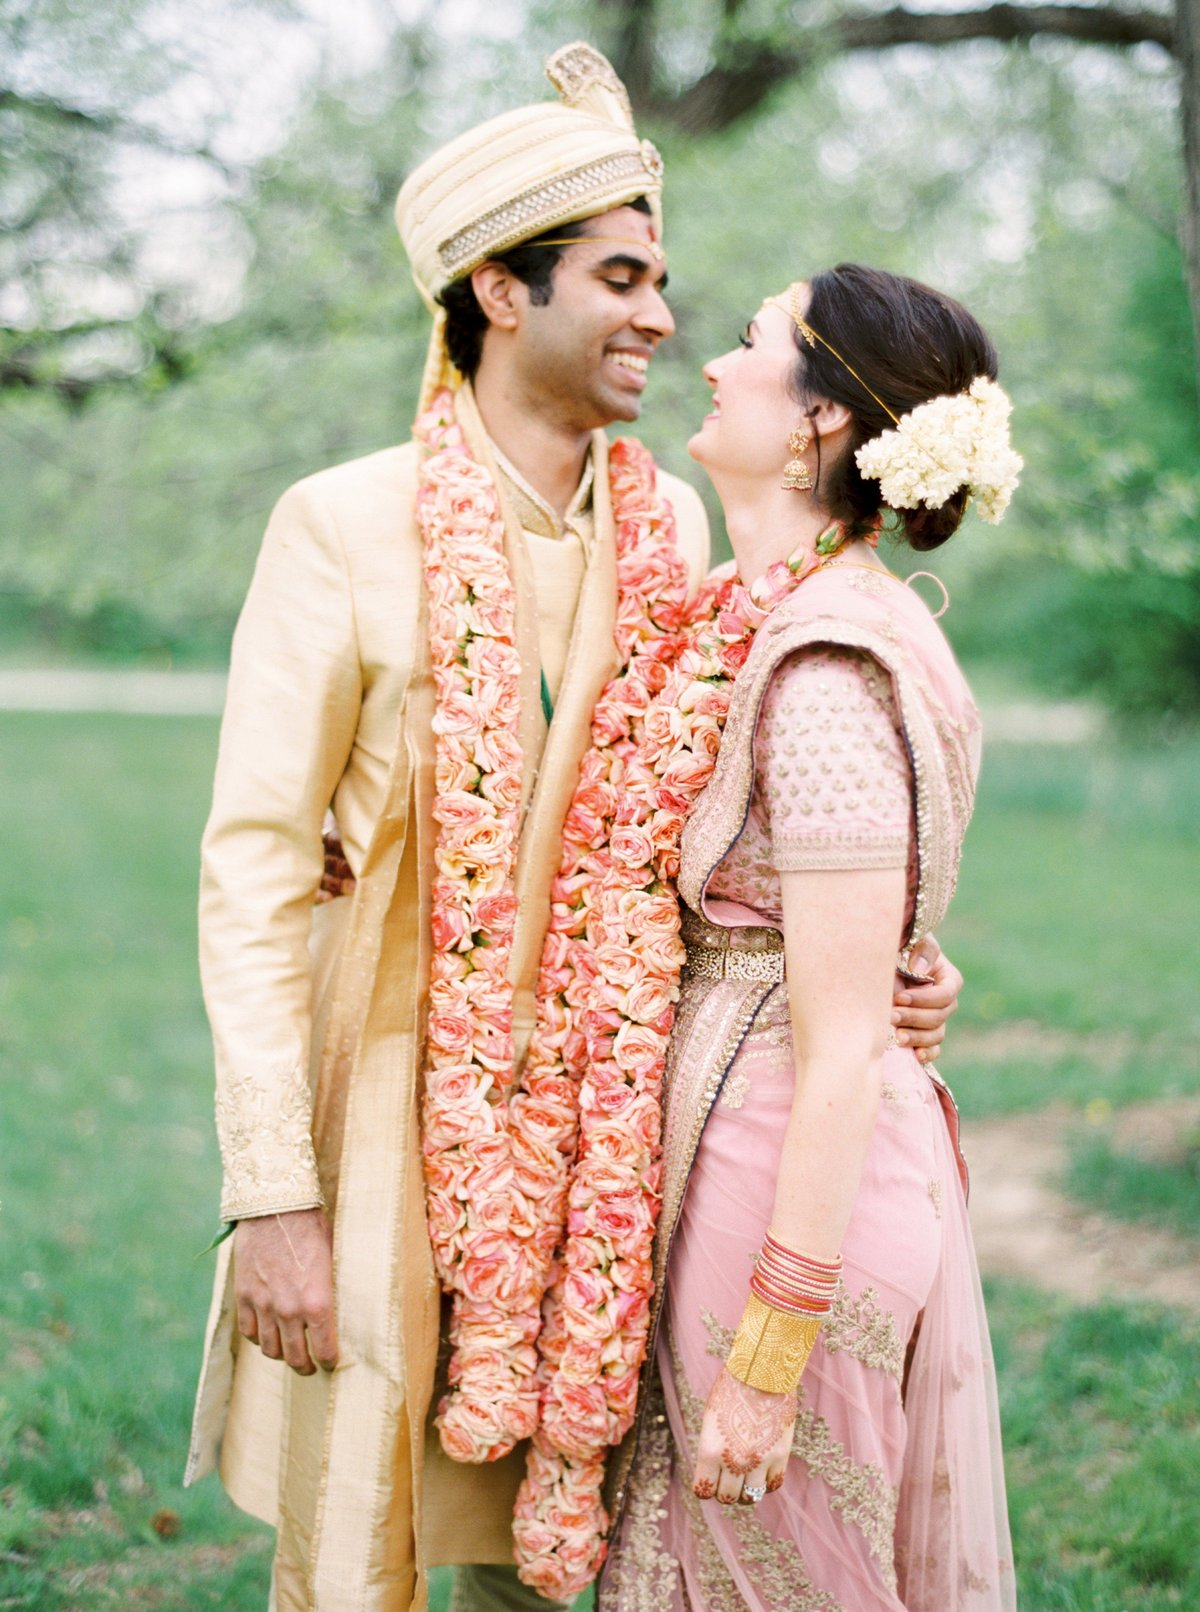 nicoleclareyphotography_hannah+akash_cincinnati_wedding_0045